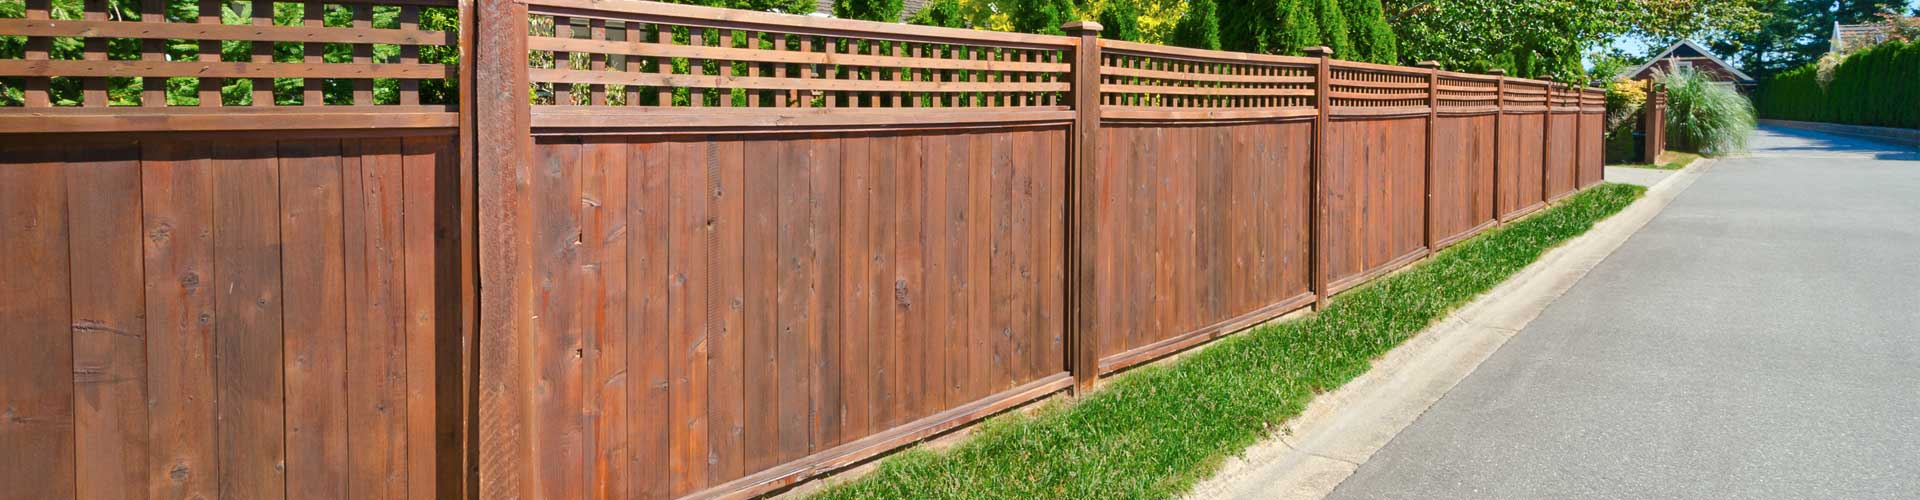 Wood fence installation in harford county split rail fences custom wood fencing in harford county md baanklon Gallery